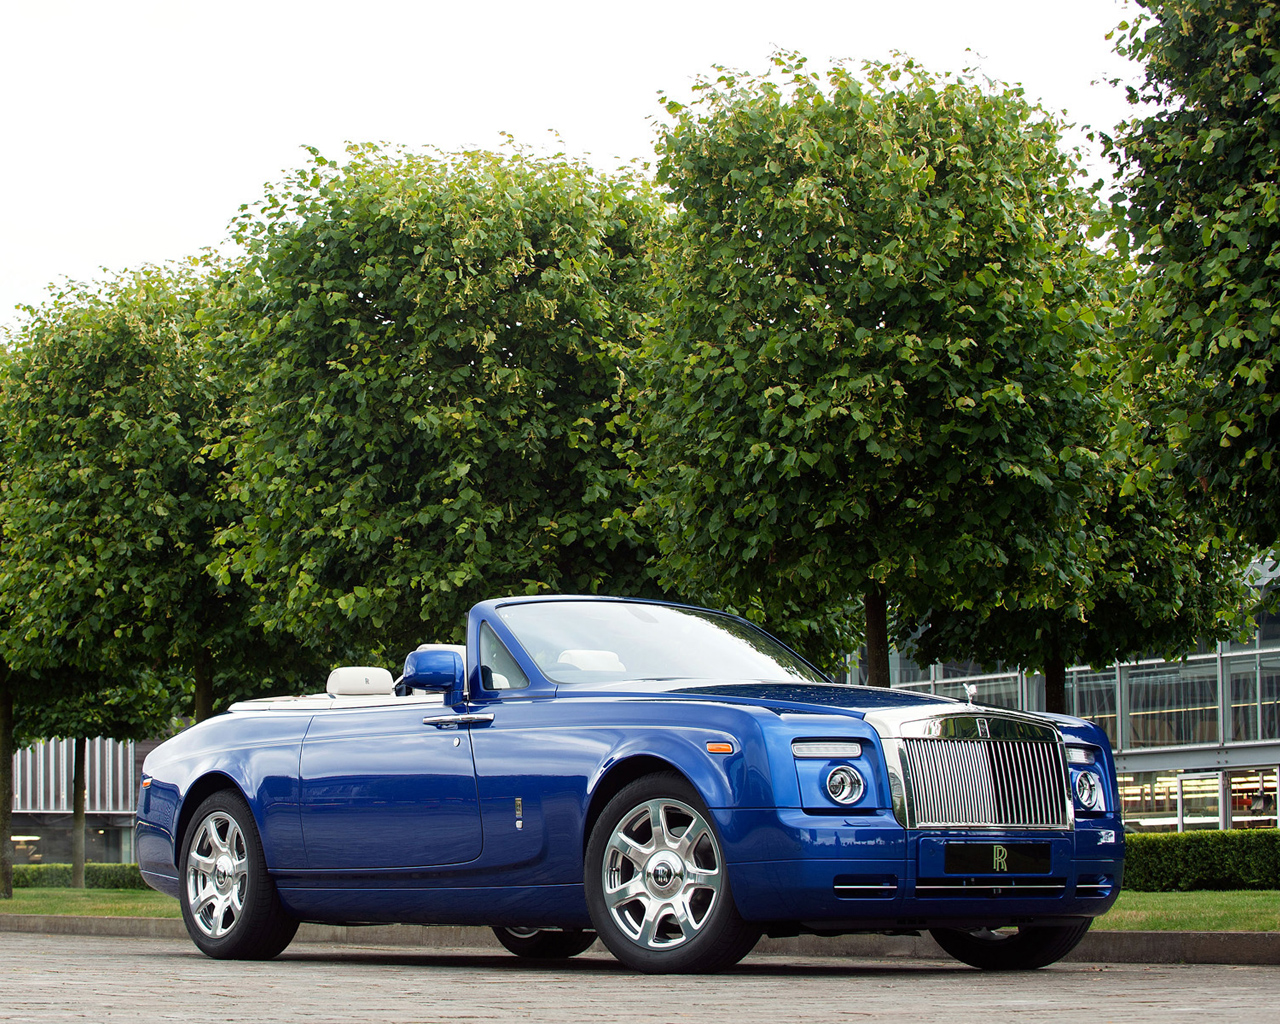 Rolls Royce Phantom Bespoke Drophead Coupe